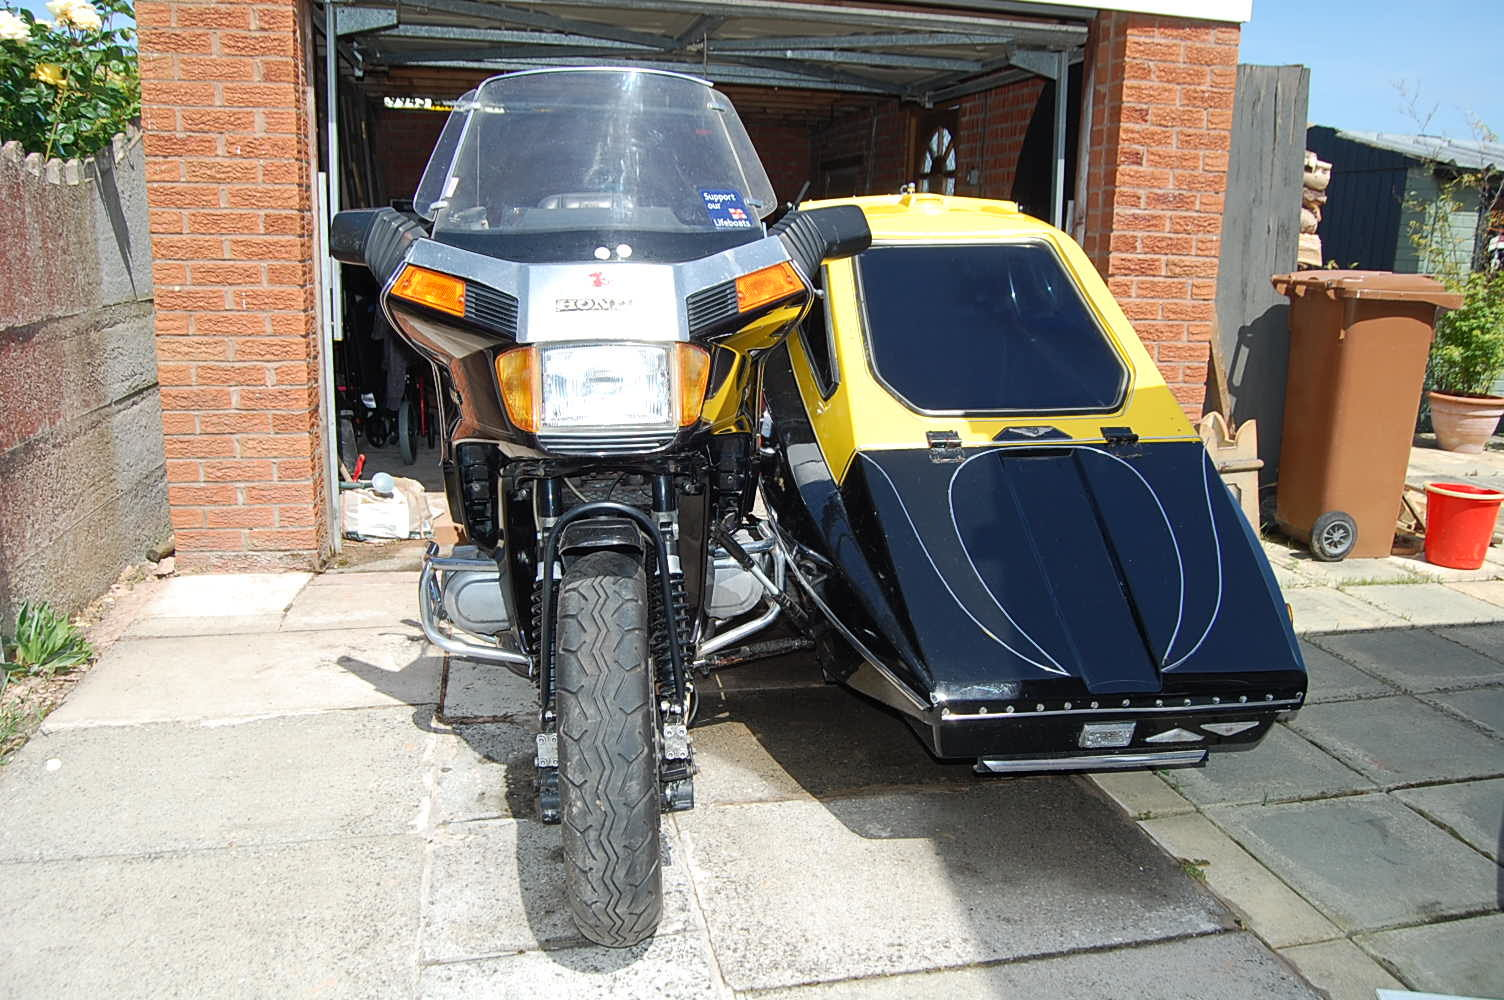 1996 HONDA 1200cc GOLD WING ASPENCADE OUTFIT For Sale (picture 2 of 6)